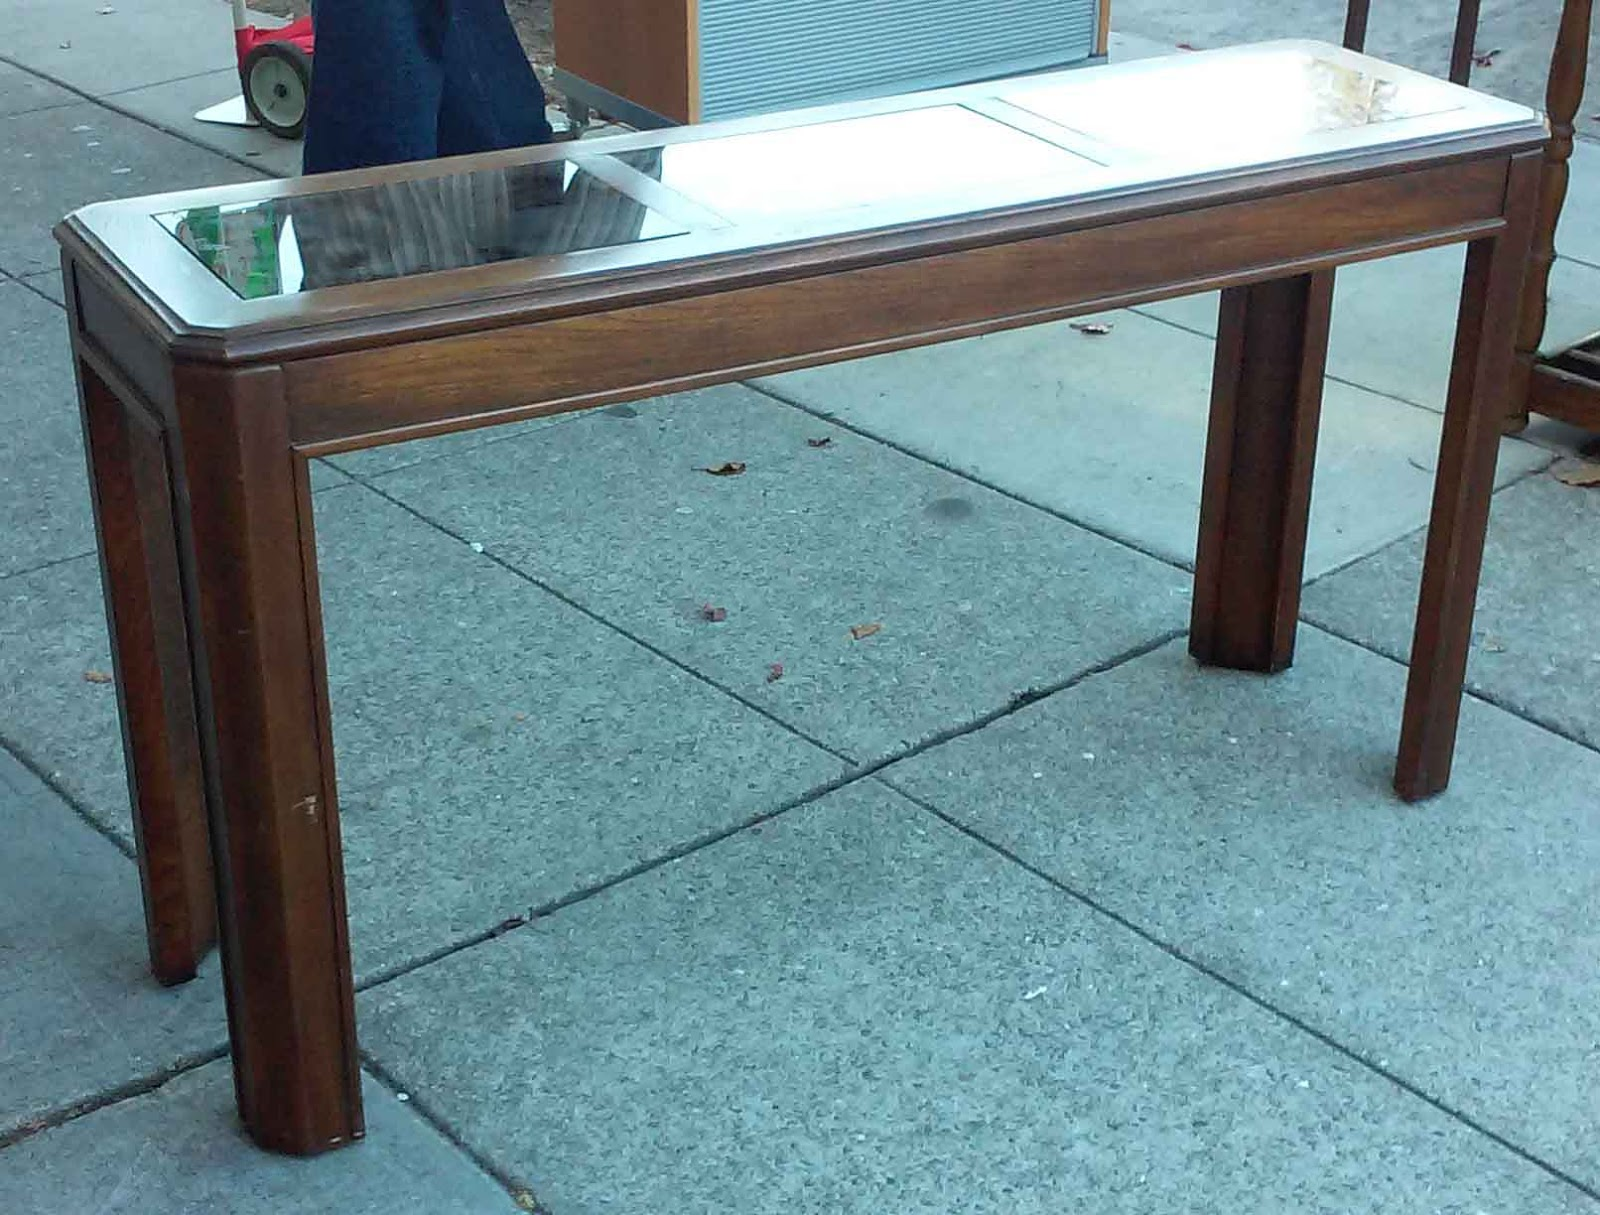 Uhuru furniture collectibles sold 70 39 s style sofa table for Furniture 70s style